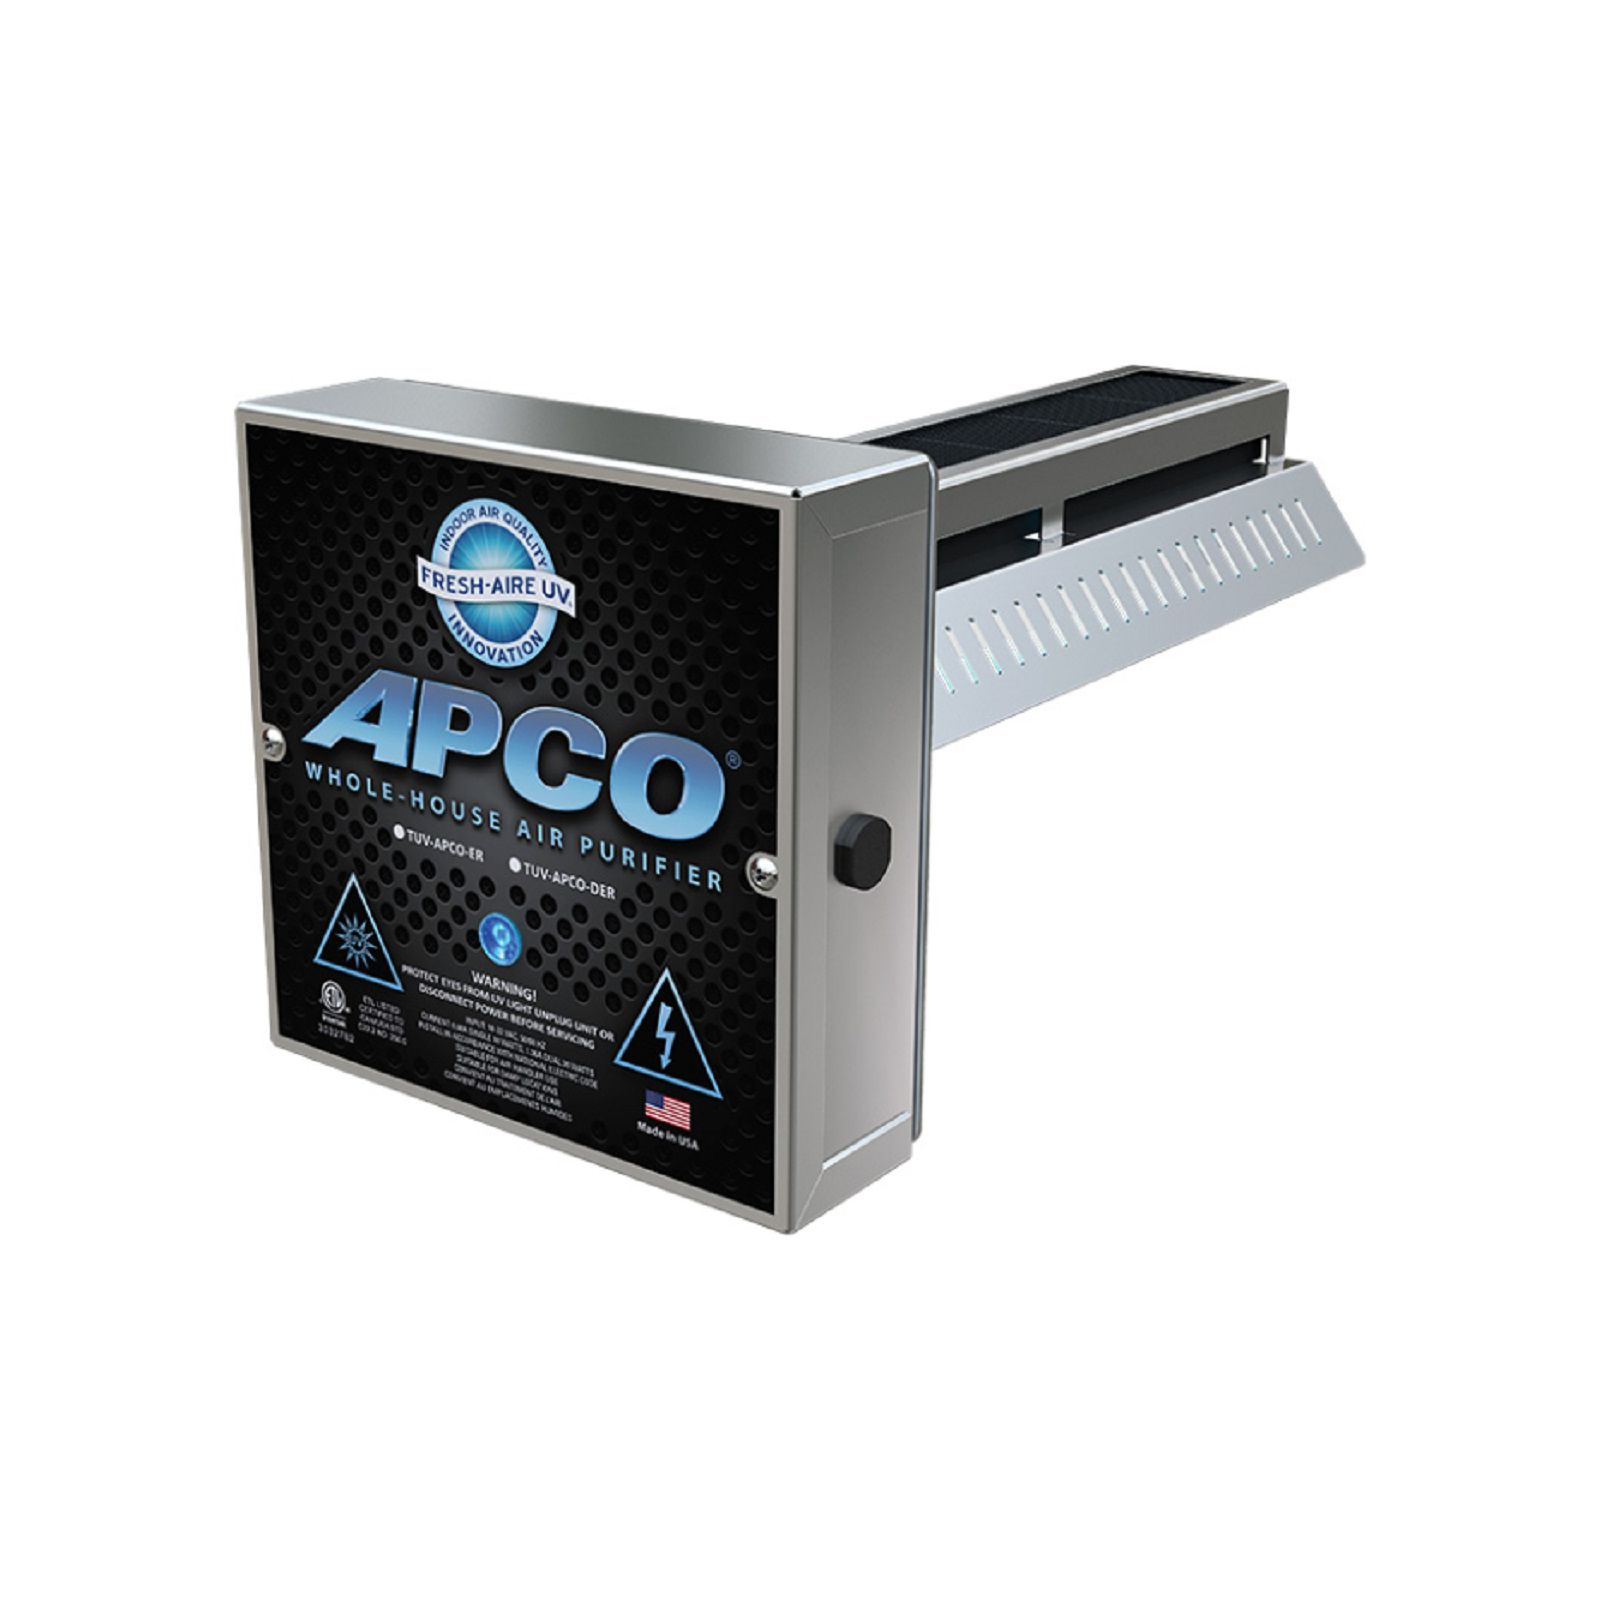 Triatomic TUV-APCO-DER - One Year Lamp, with 2nd Remote Lamp (18-32 VAC series) APCO In-Duct